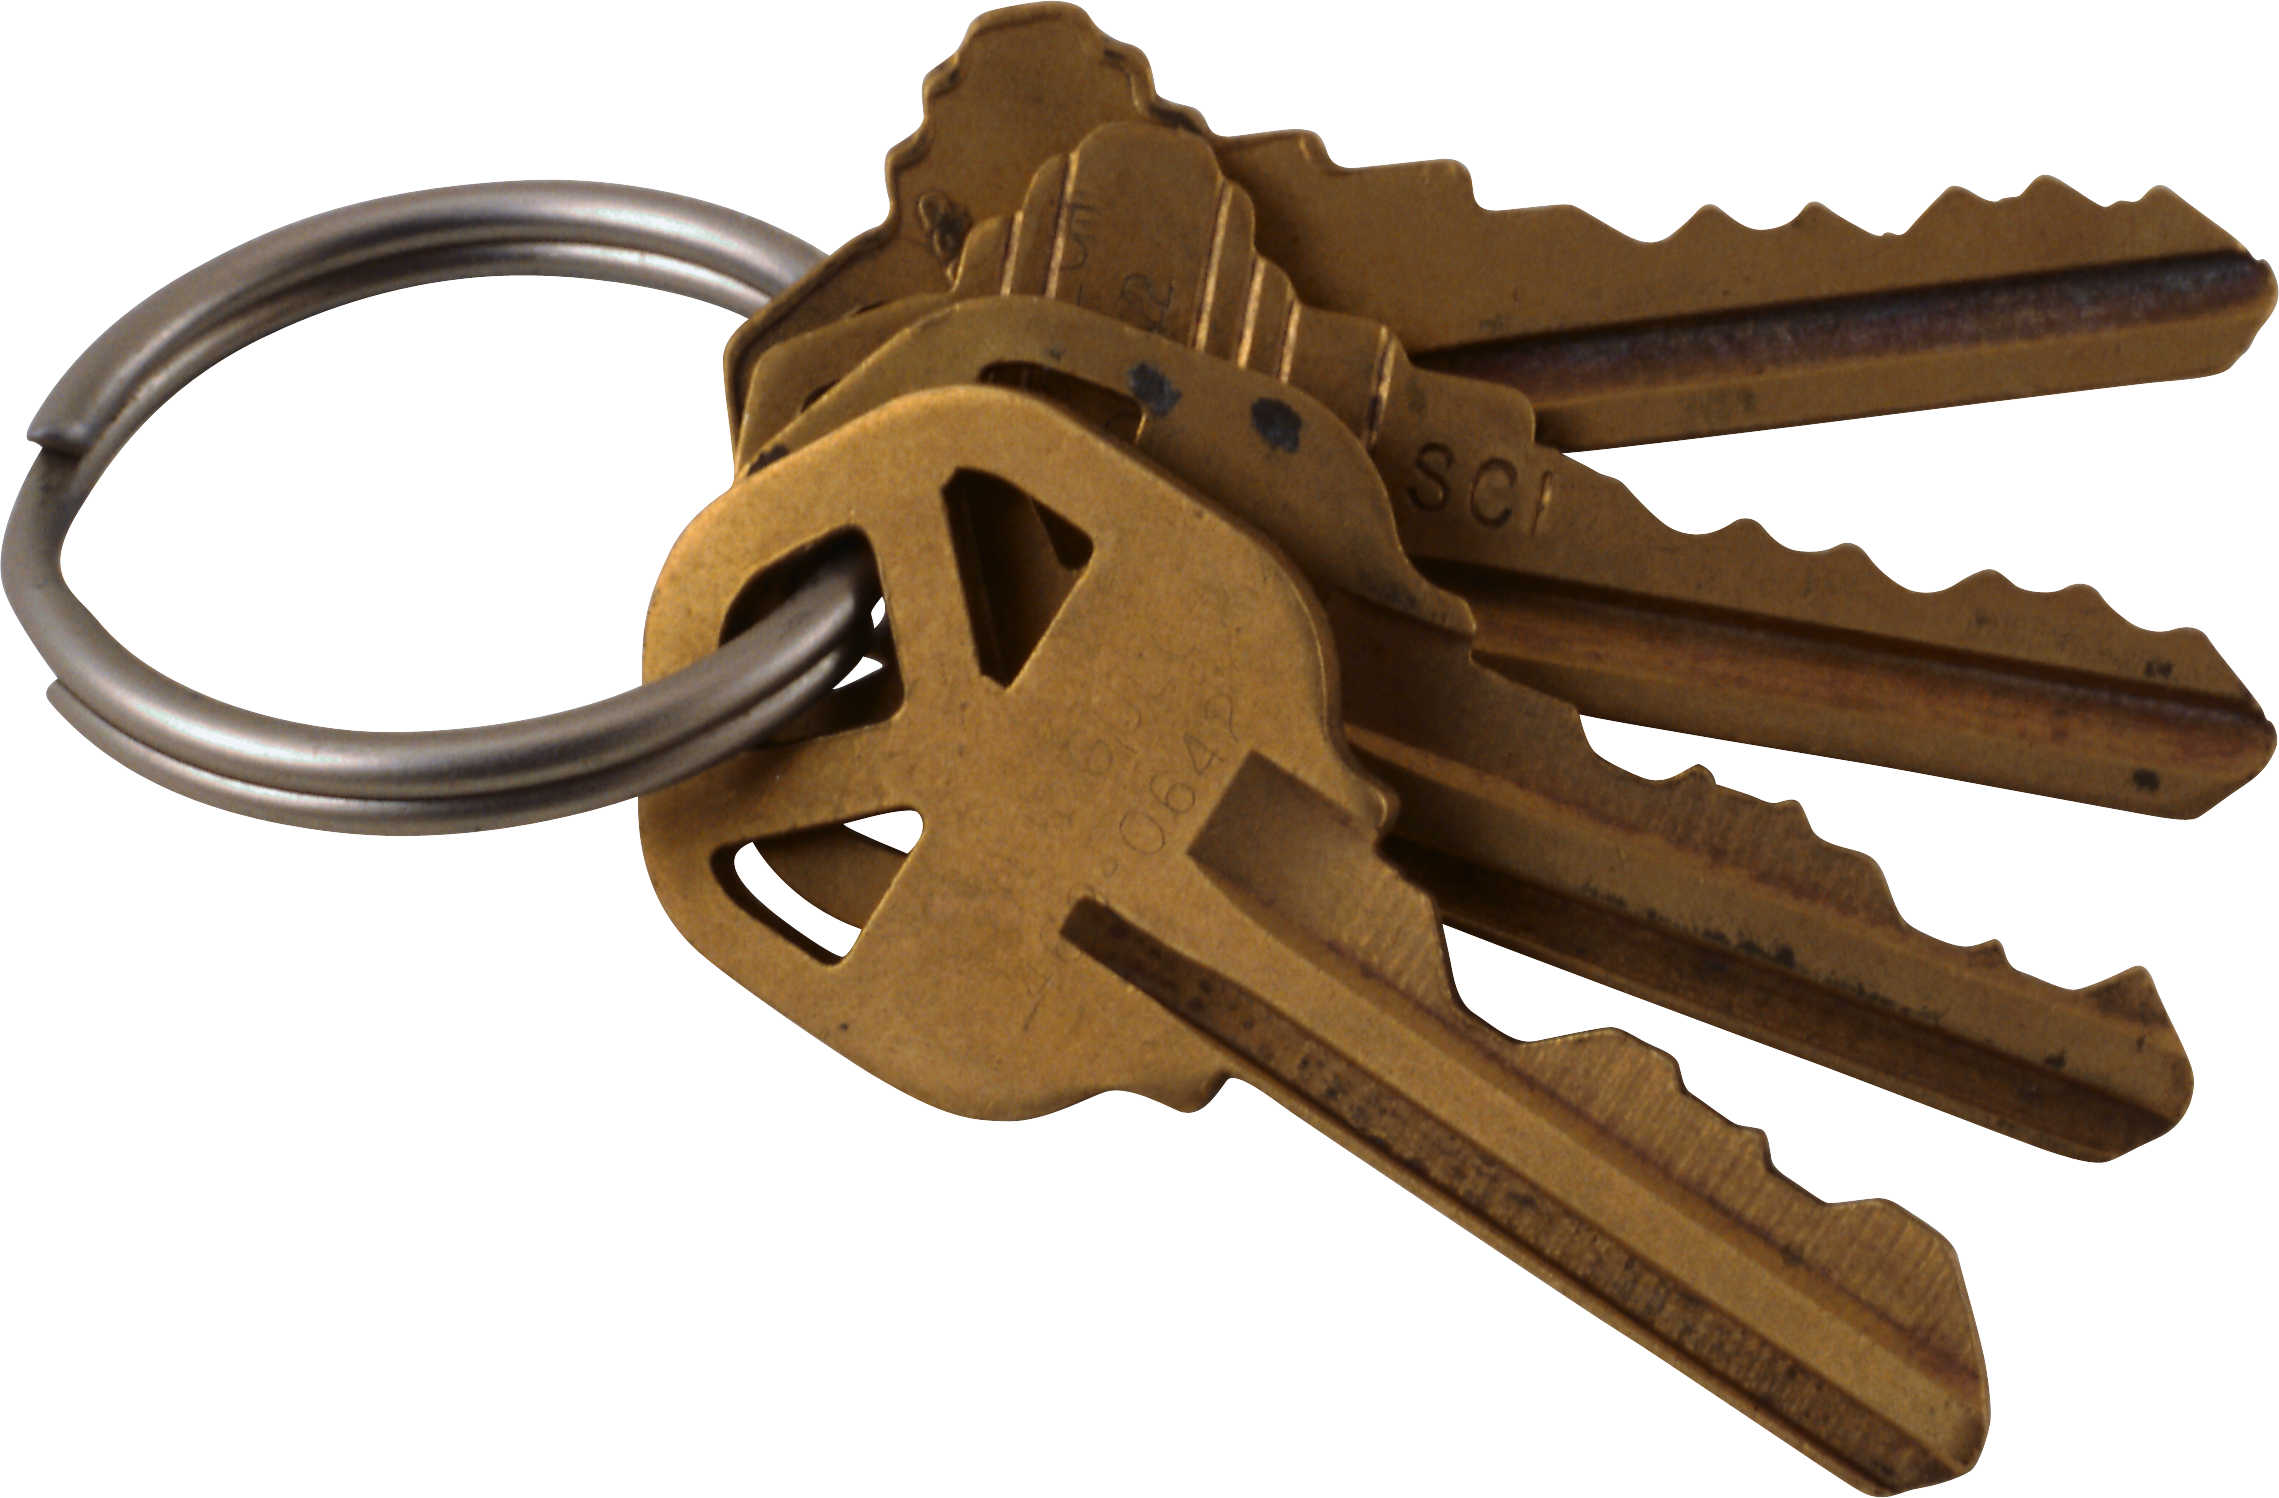 Keys transparent background. Key png images free